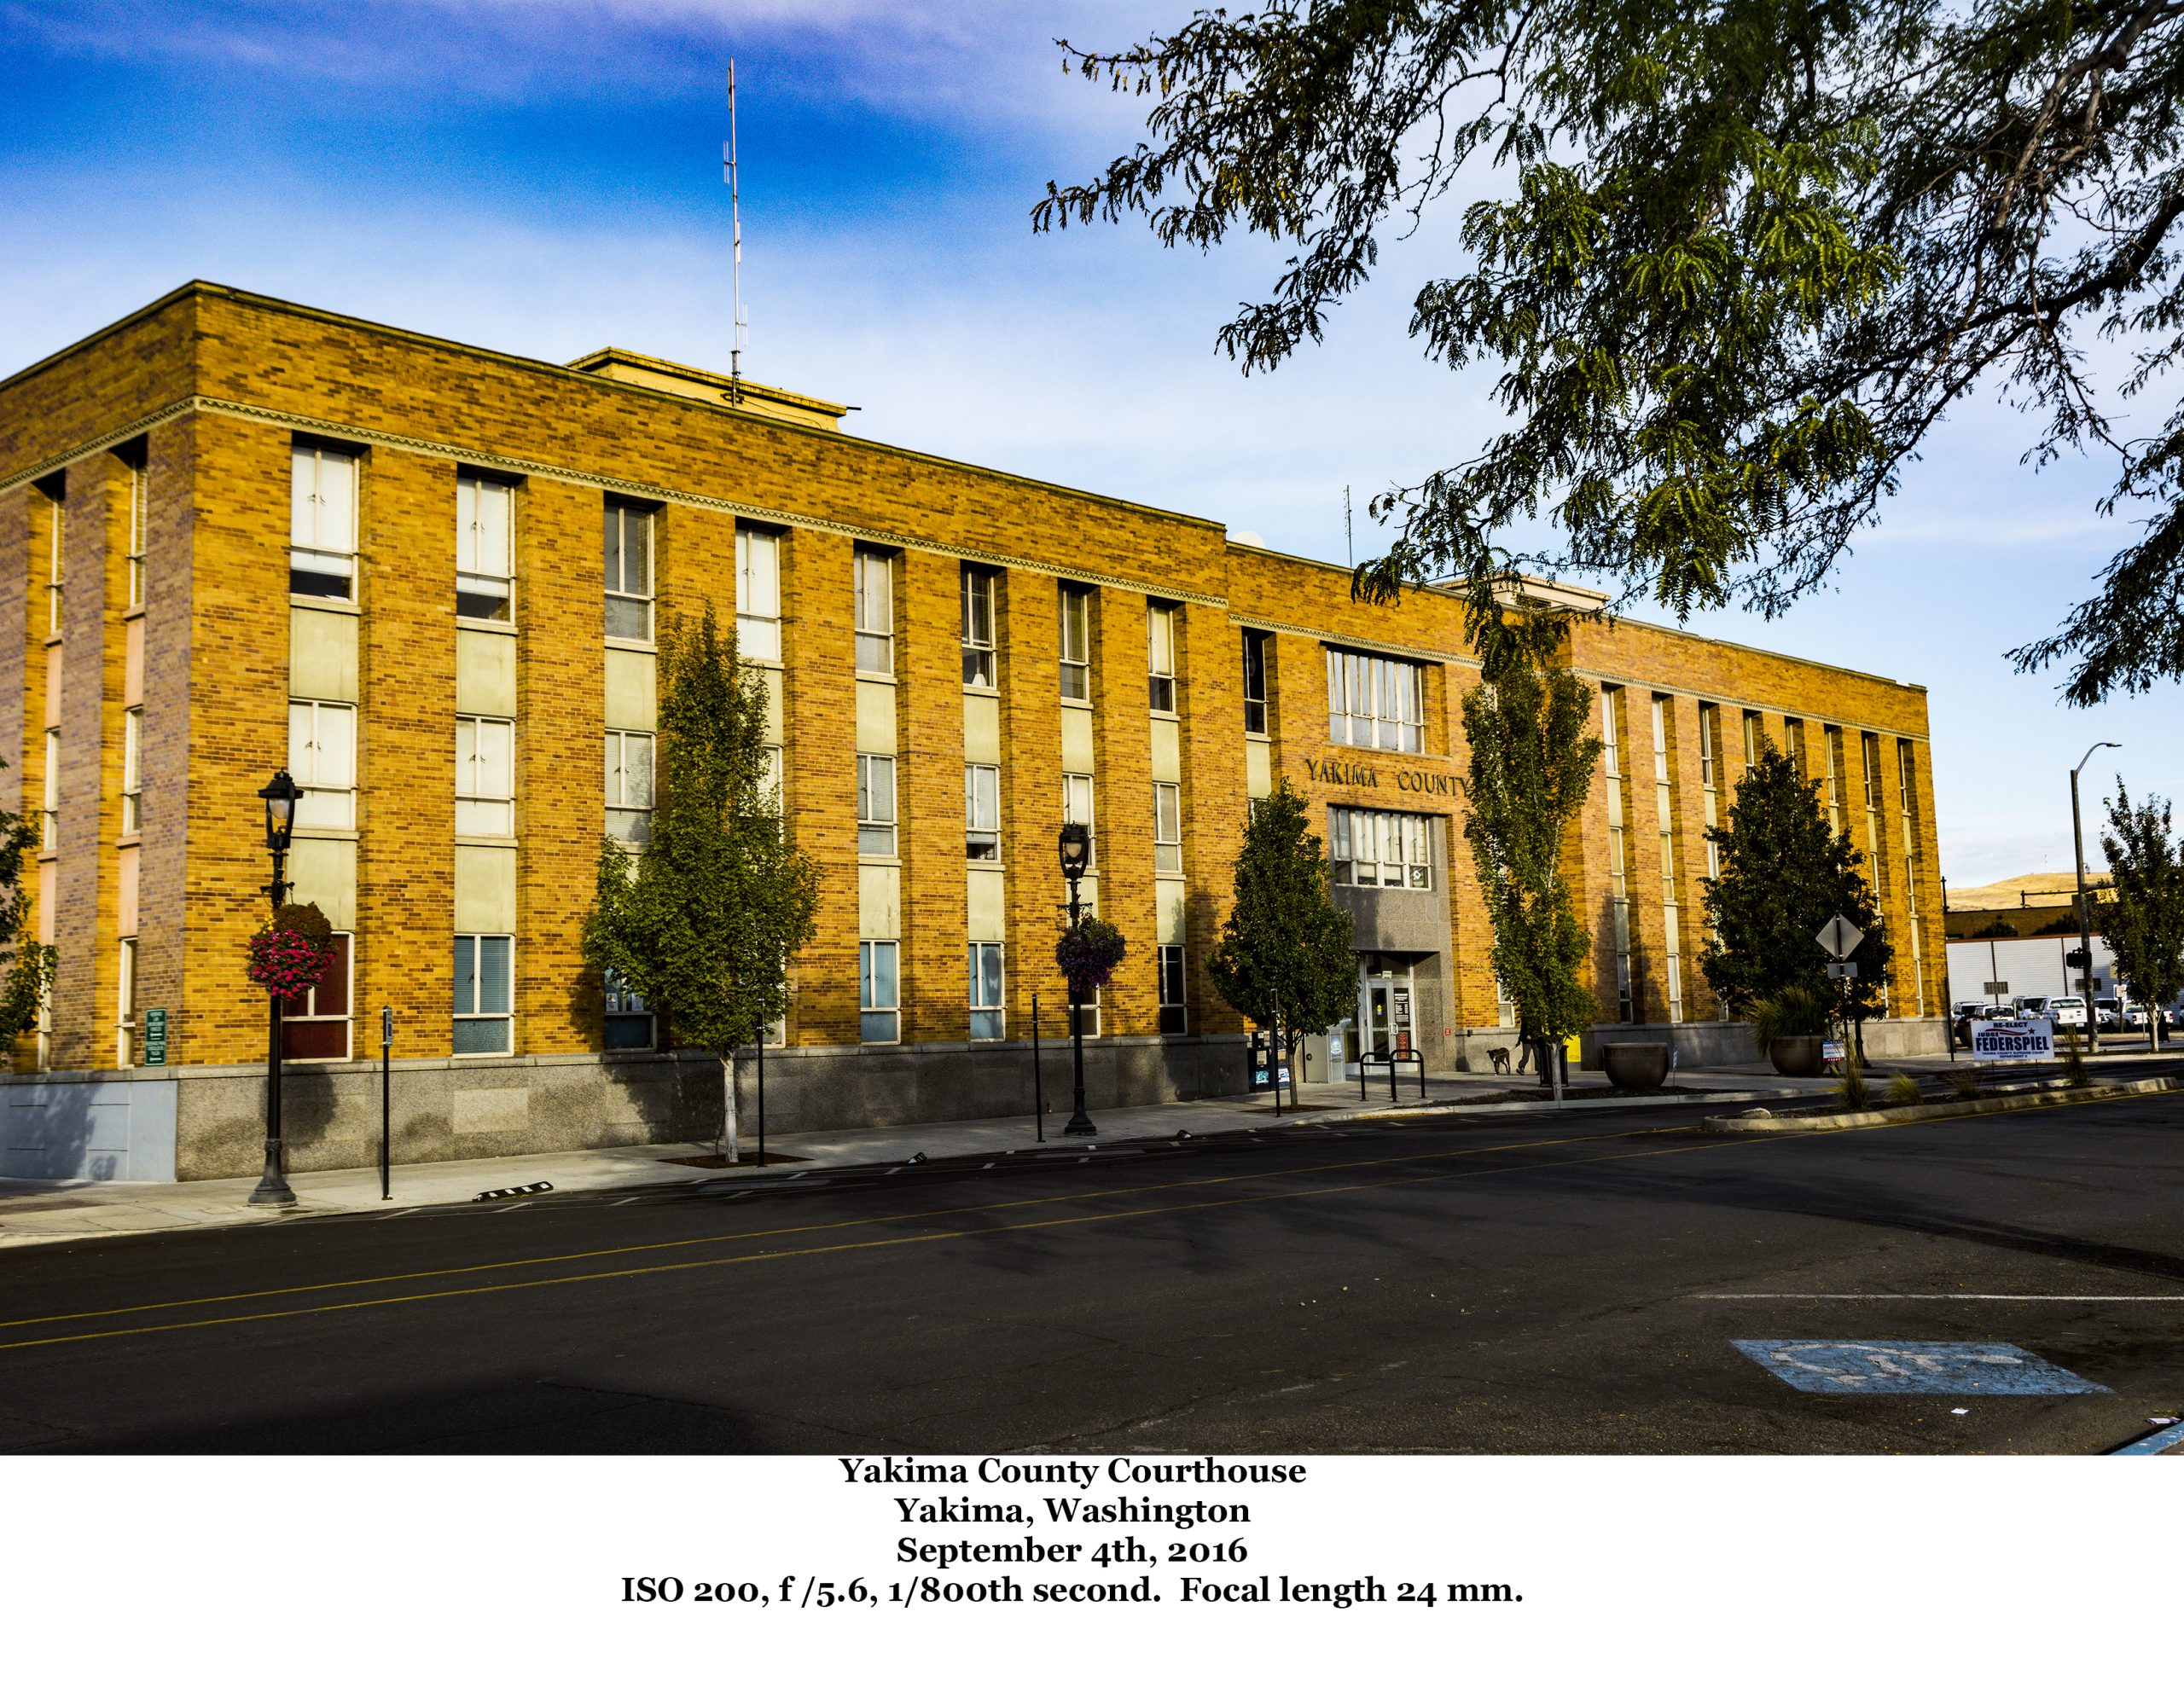 The Yakima County Court House, Yakima, Washington